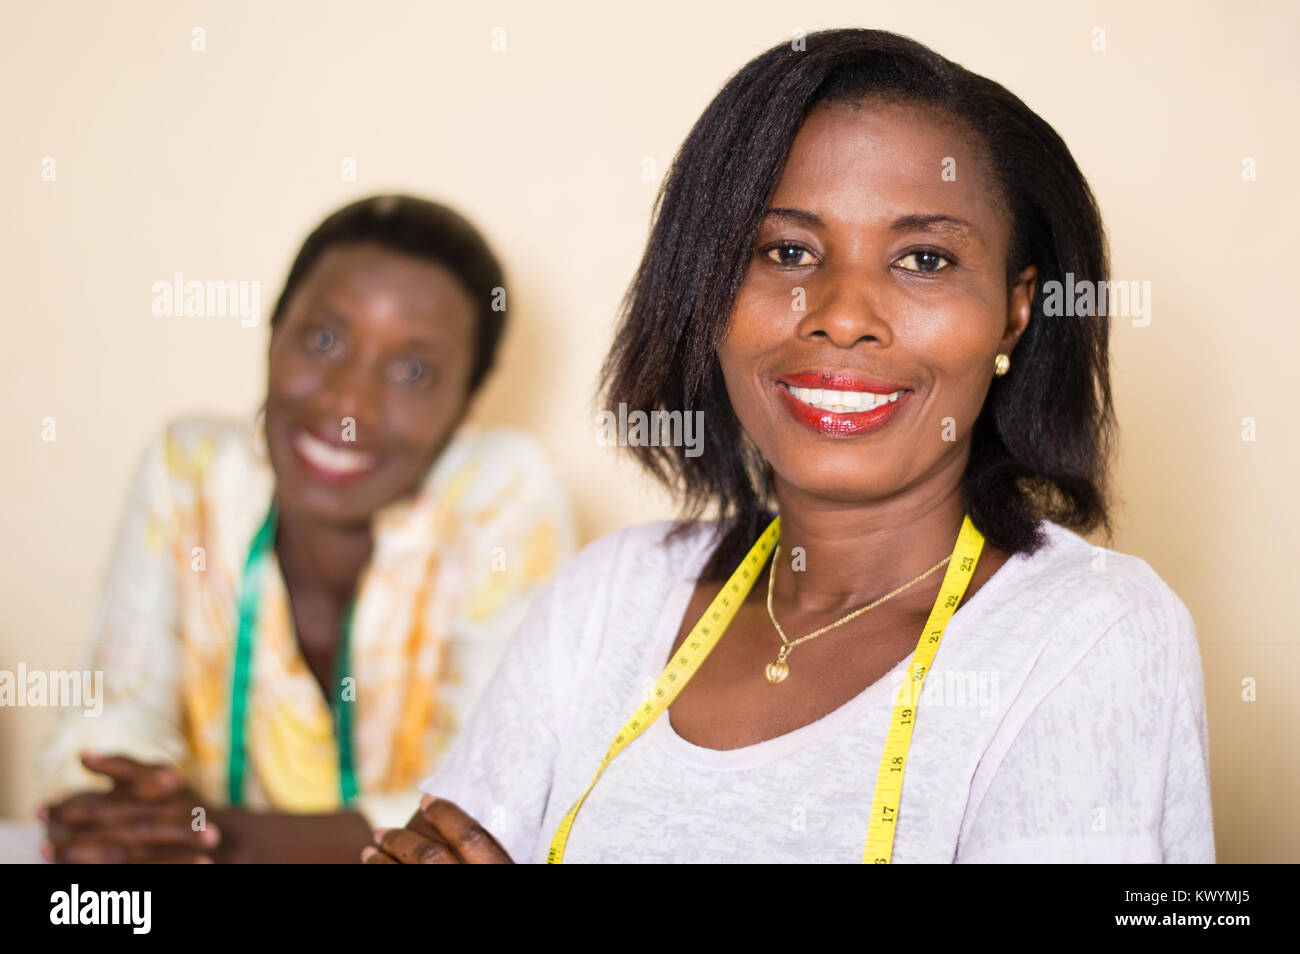 Smiling seamstress in her workshop looks at the camera with her colleague in the background. - Stock Image